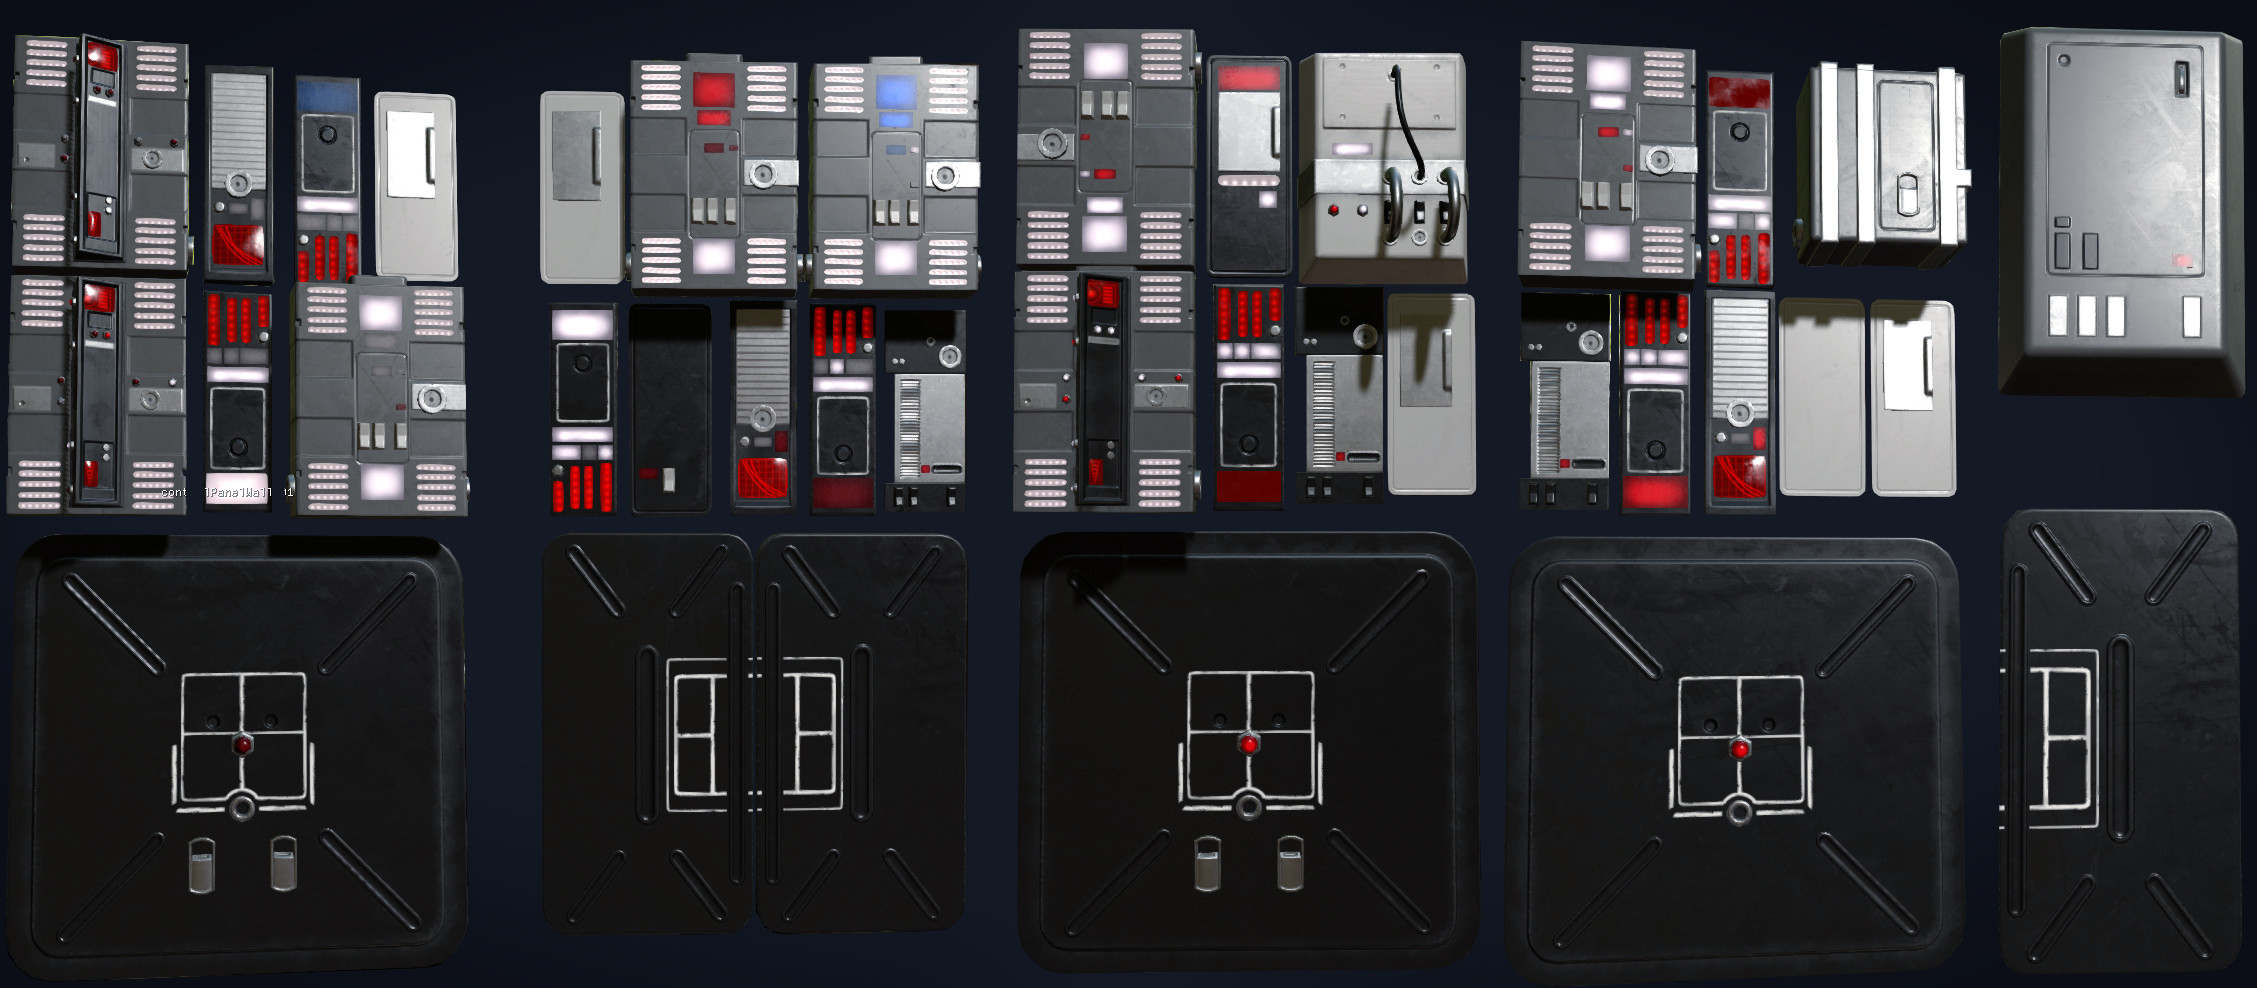 Examples of the kit pieces I made for the computers on the pit walls